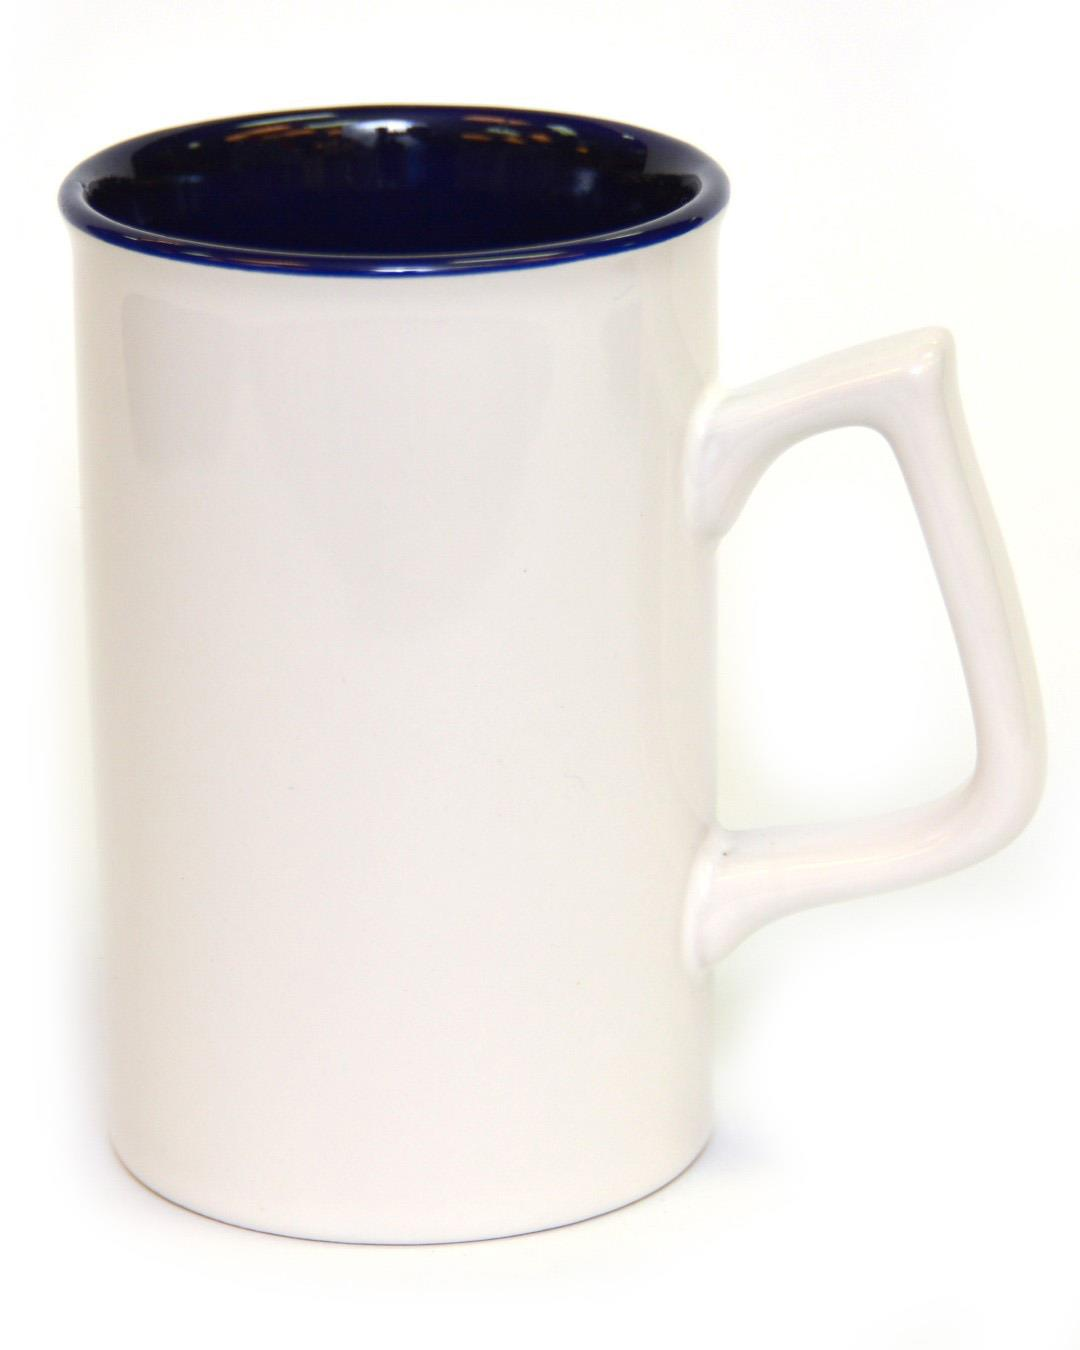 12 Ounce Ceramic Mug - W/CB White/Blue